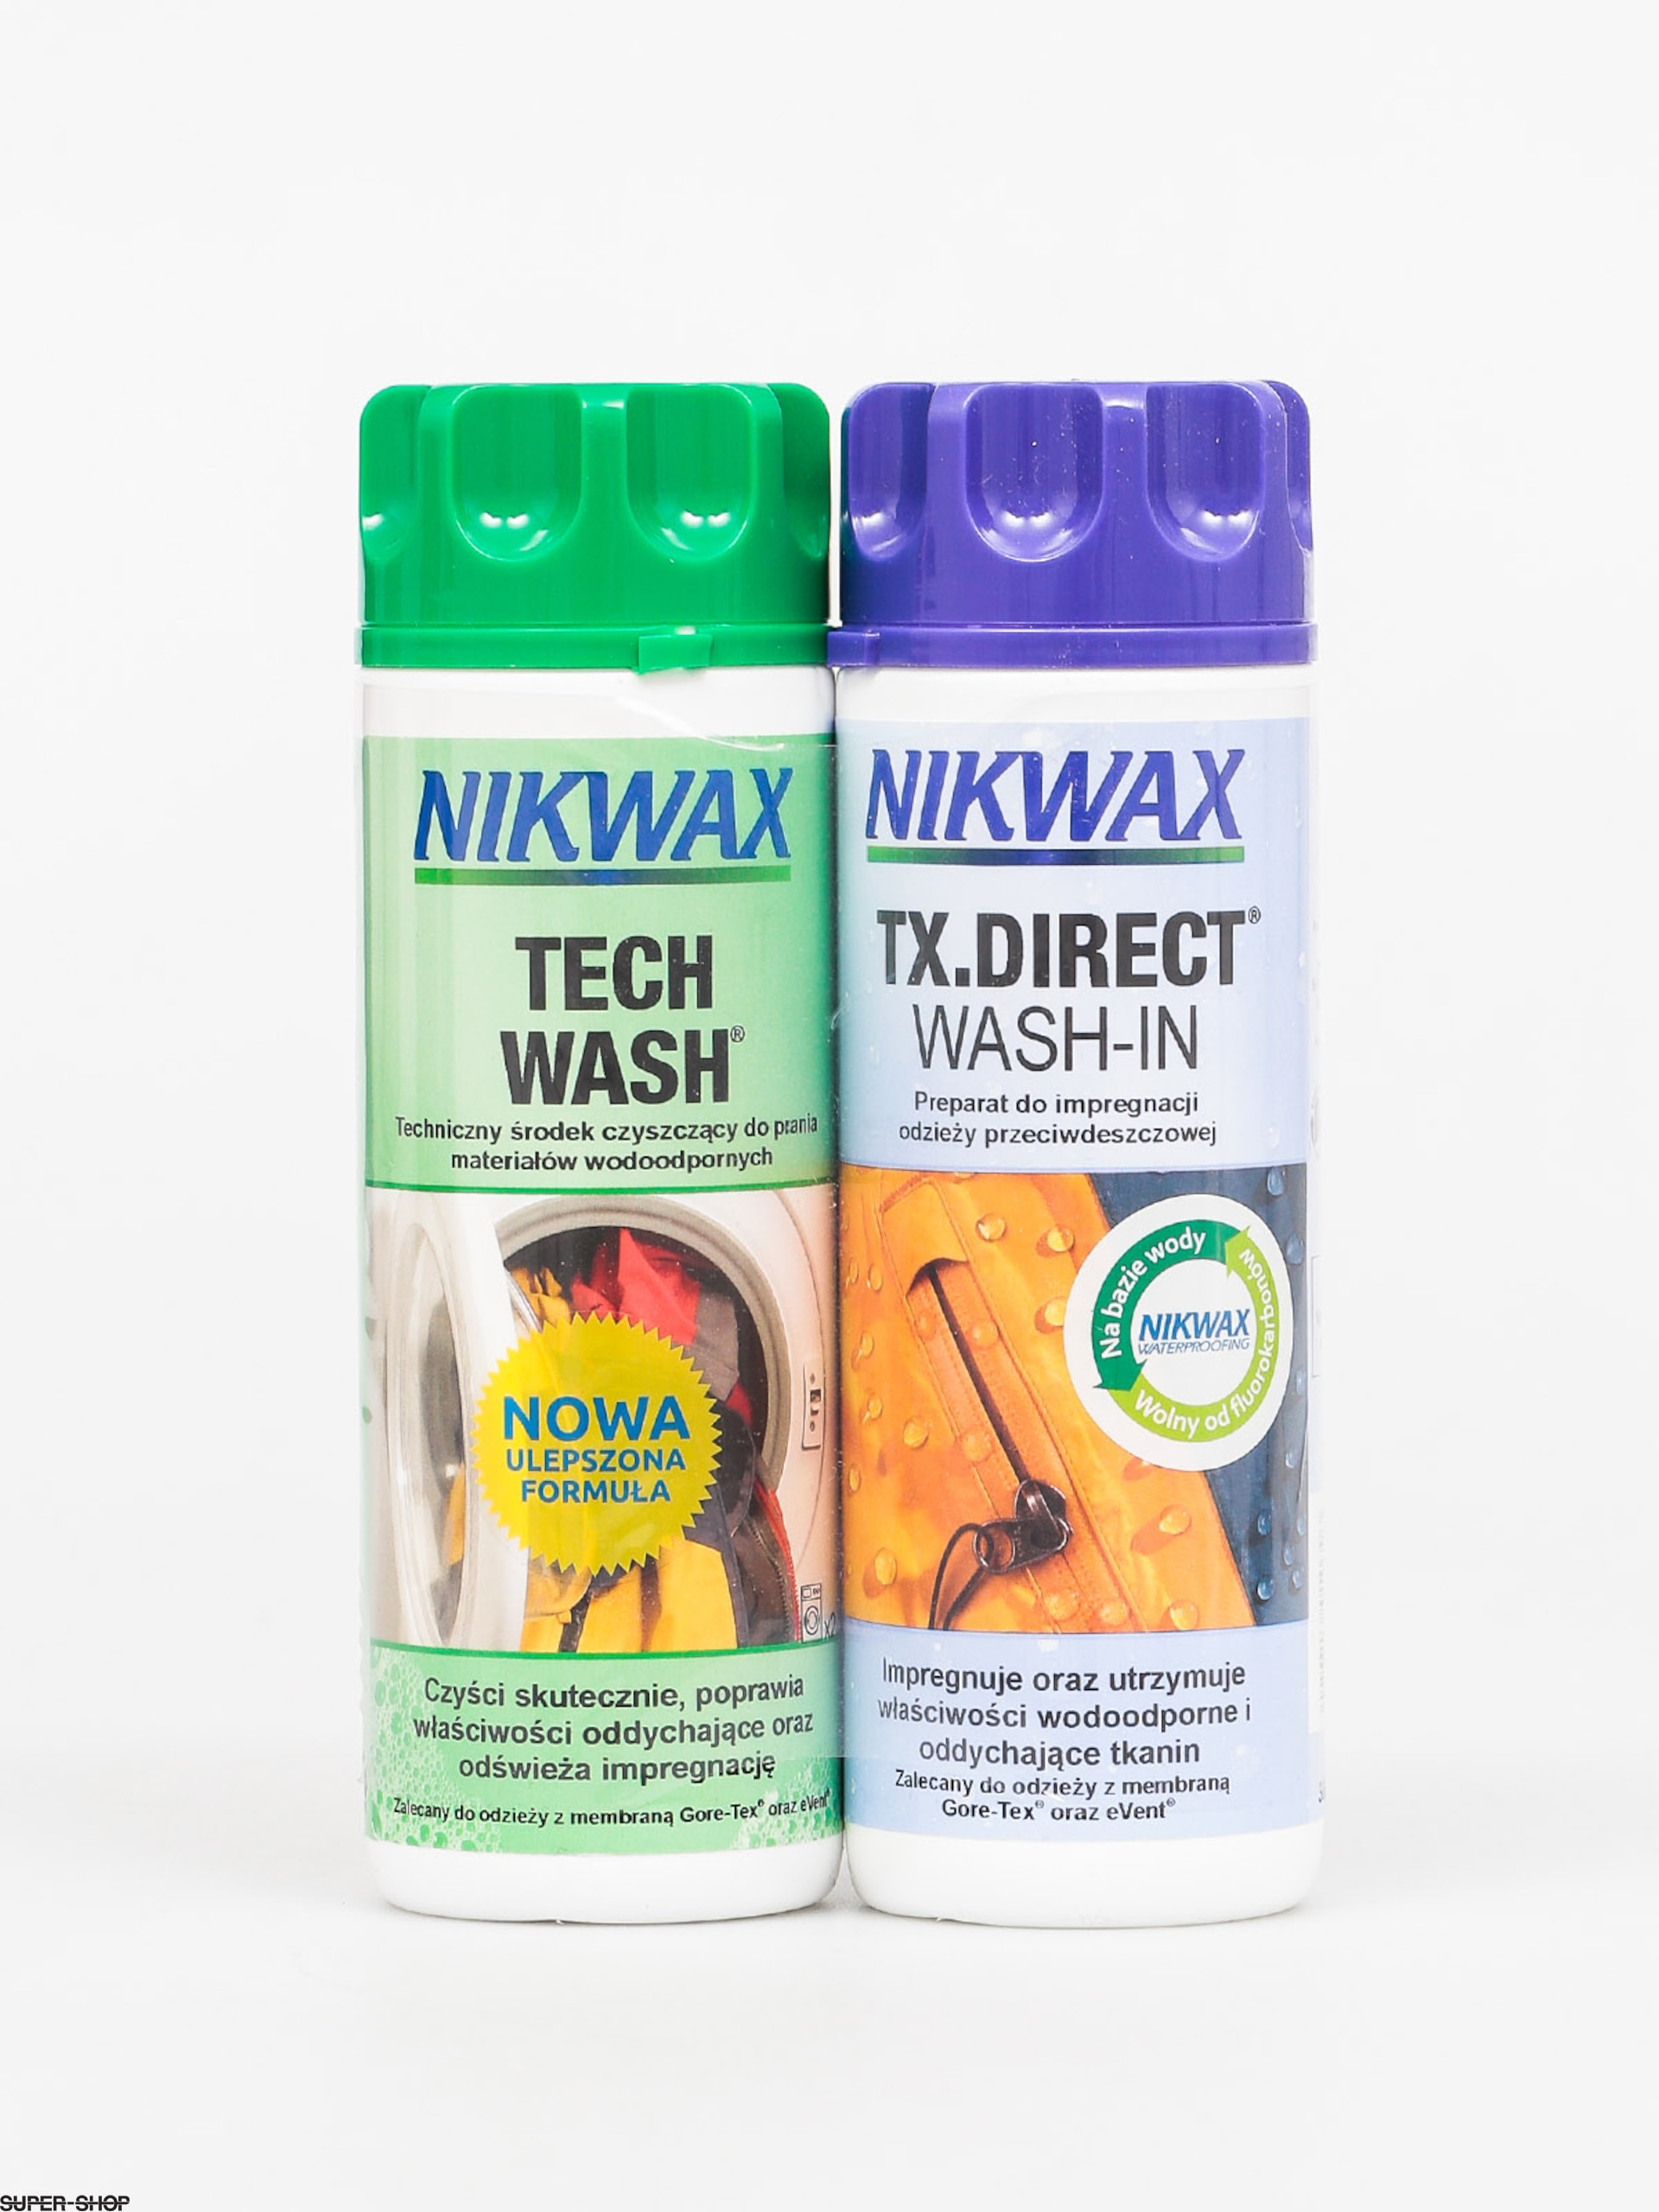 Nikwax Waschmittel Twin Tech Wash Tx Direct Wash In (2x300ml)